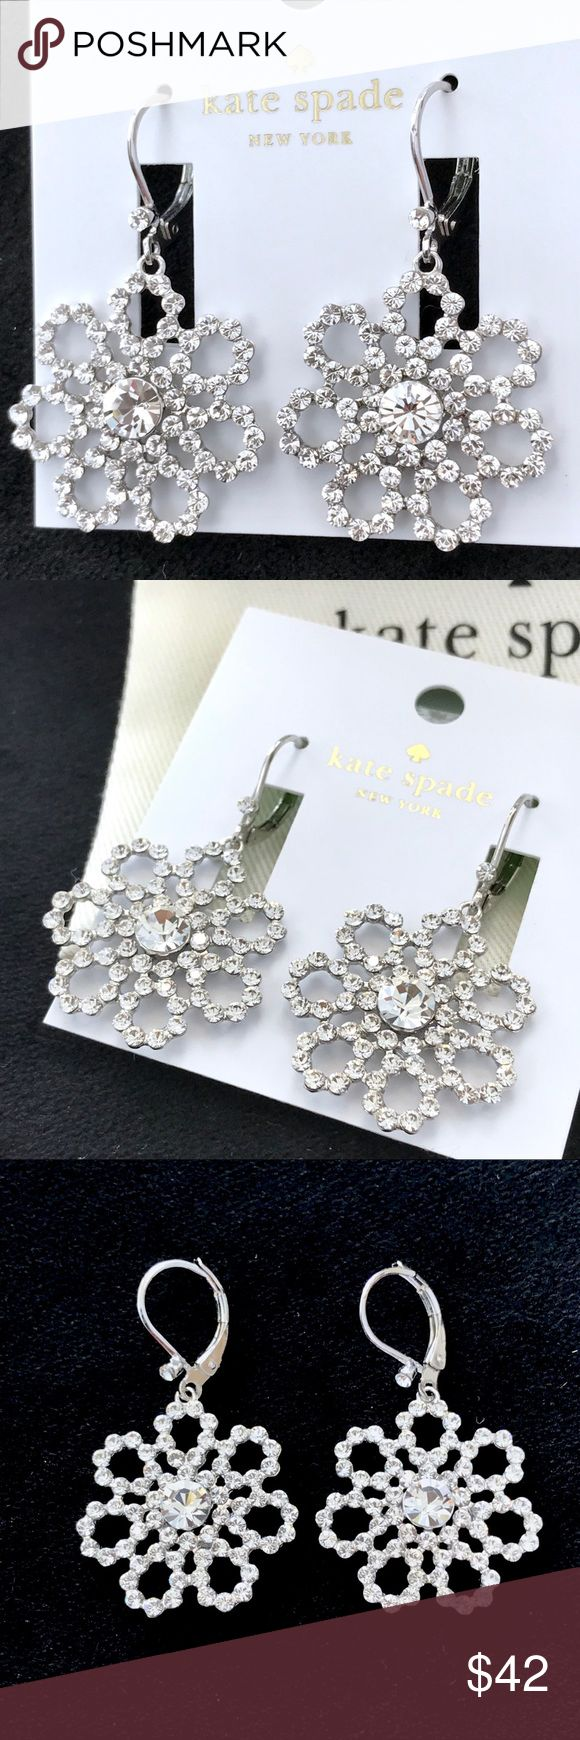 Kate Spade Crystal Lace Leverback Earrings NWT. •Description-this delicate piece features lace-inspired floral shapes rendered in sparkling stones and precious metals, for a look that's romantic but still very of-the-moment. MATERIAL shiny rhodium plated metal with glass stone FEATURES leverback closure style # wbrud483 DETAILS weight:5.66 handcrafted imported. •Authentic. Comes with the dust bag. No Trades. No low ball offers. Price is Firm kate spade Jewelry Earrings